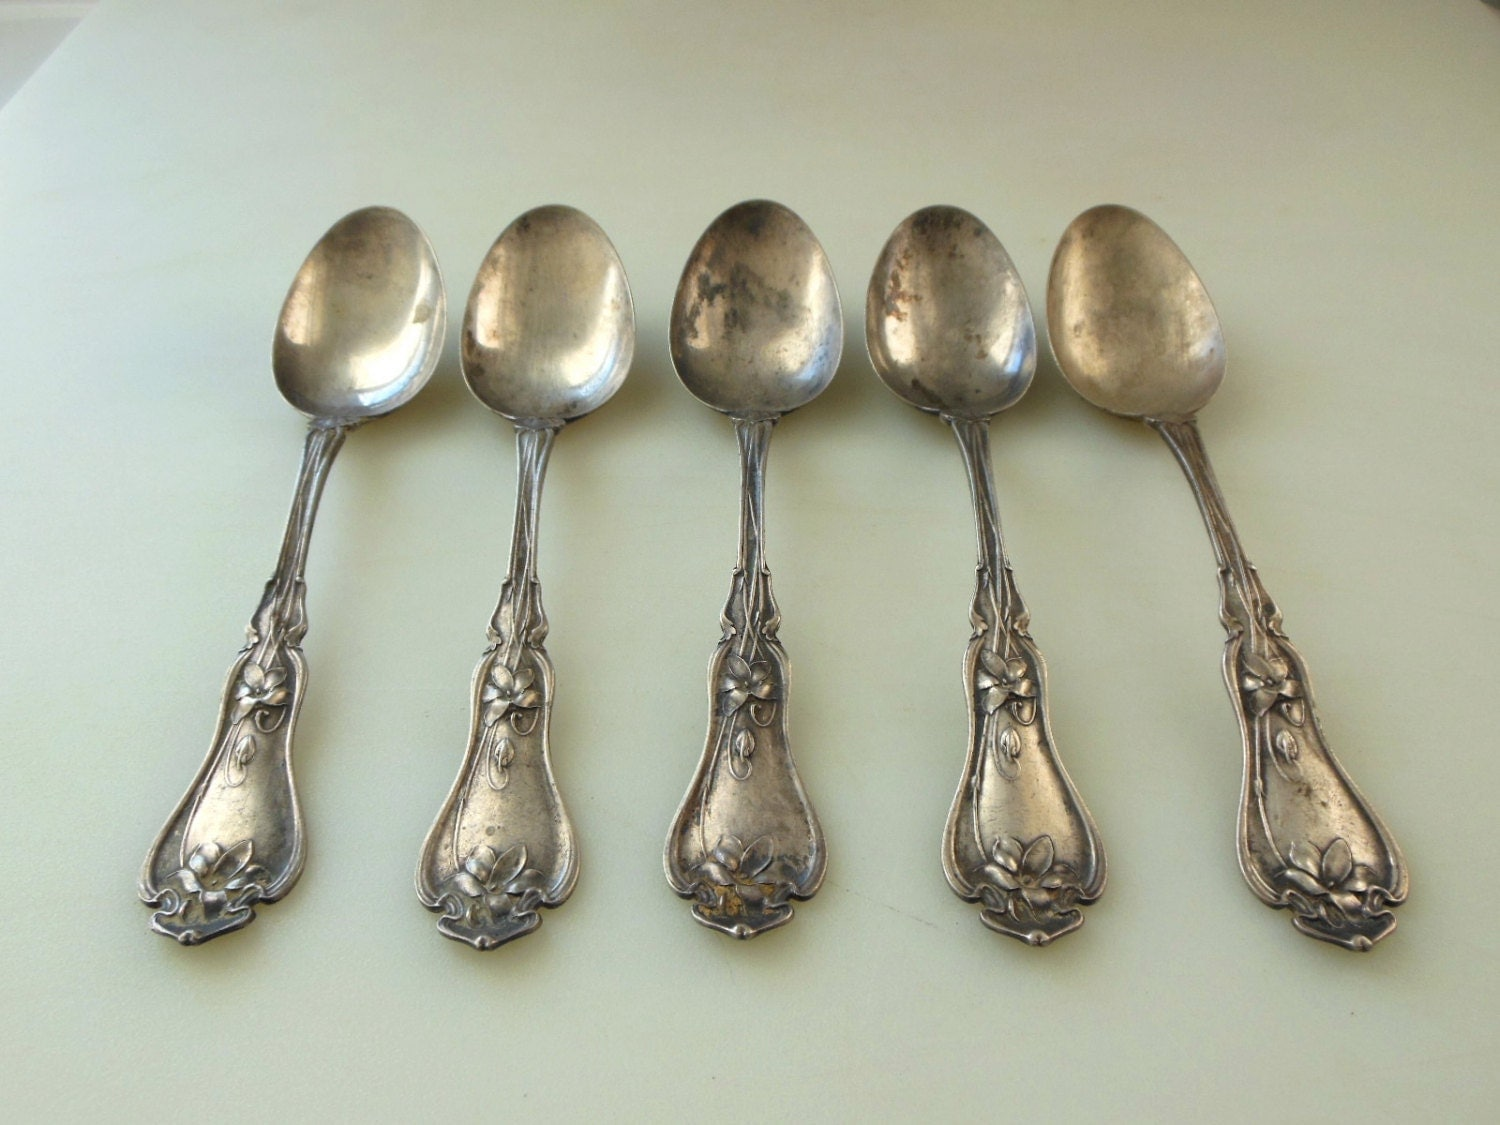 5 Gorham Whiting Violet Sterling Silver Spoons